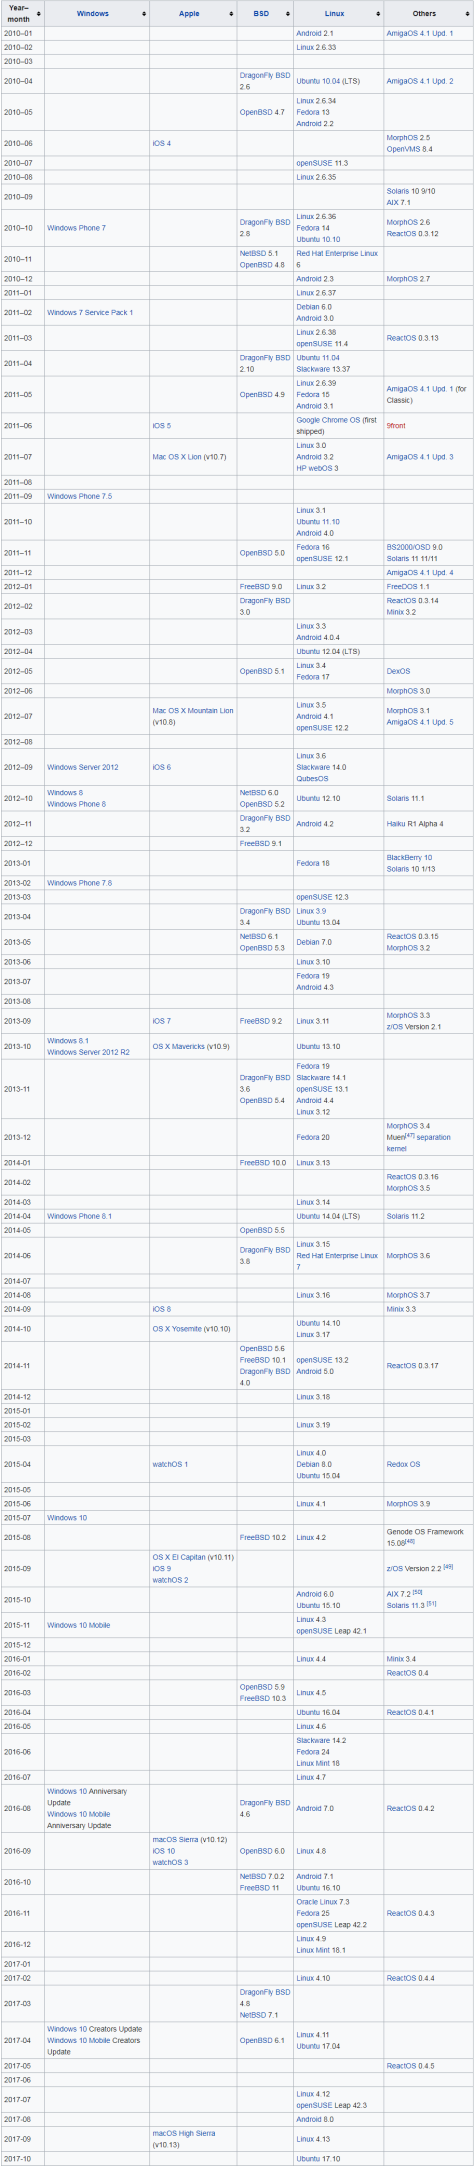 Timeline of Operating Systems 2010S